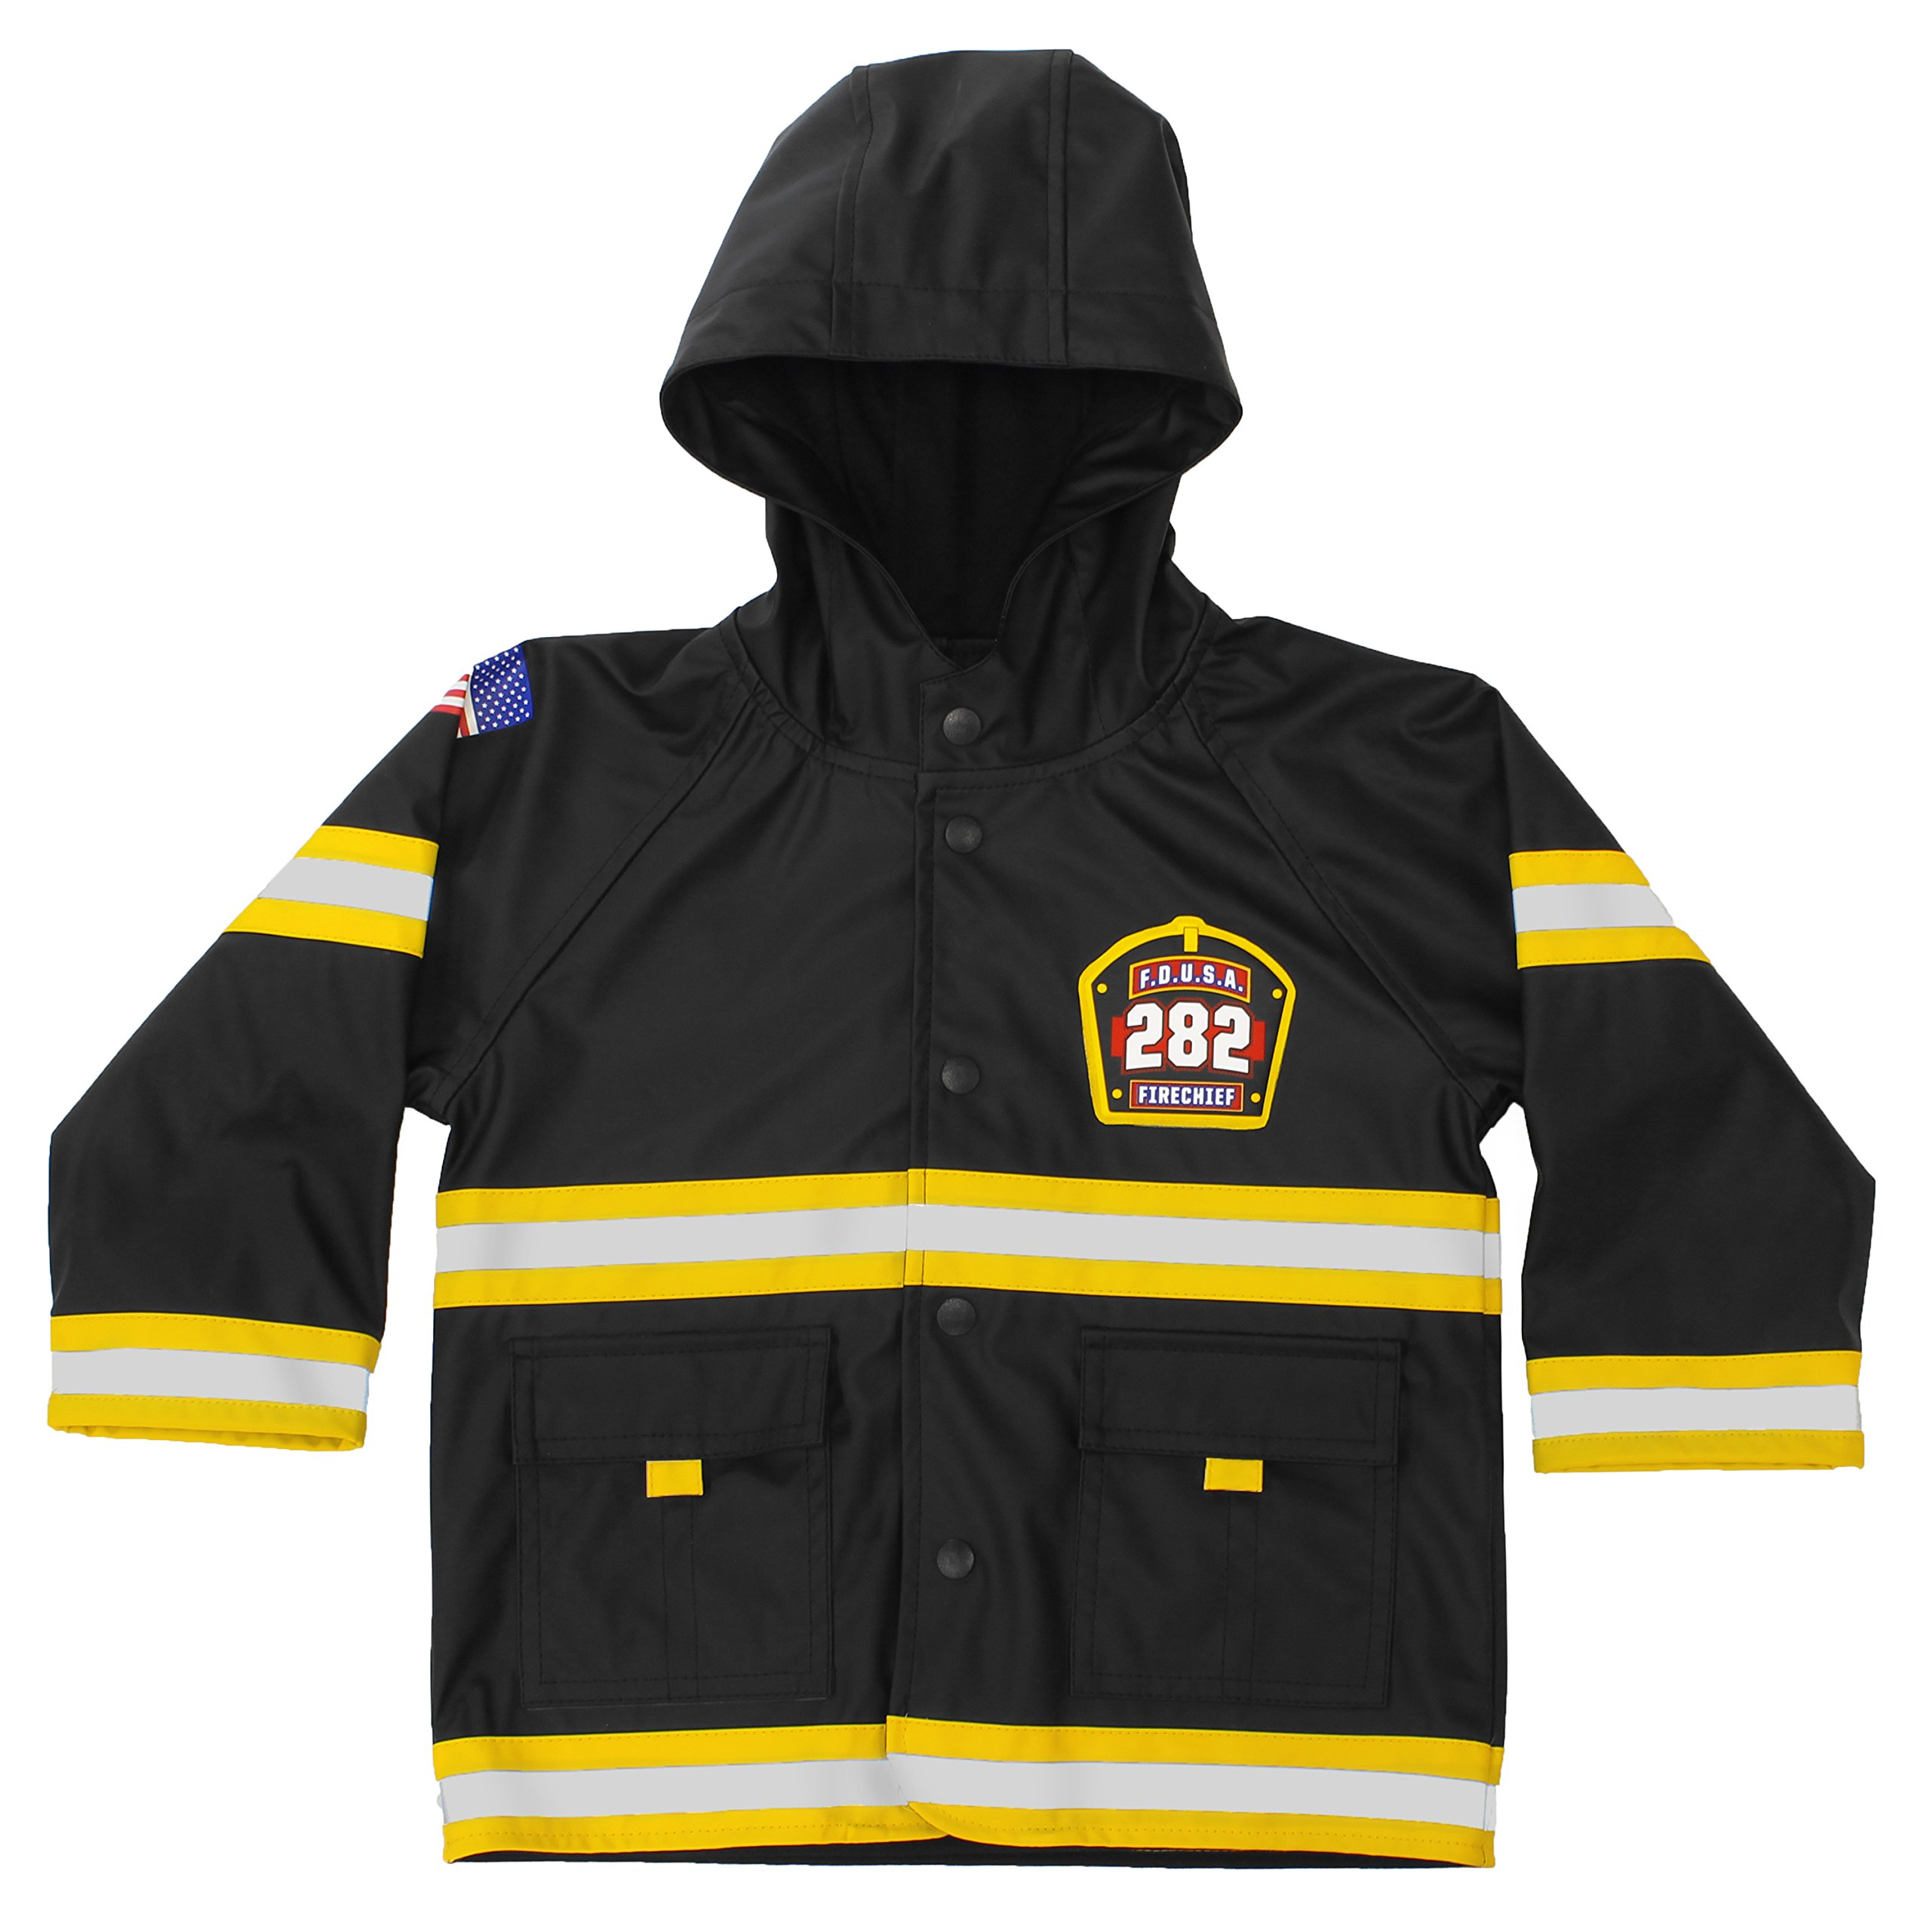 Western Chief Kids Soft Lined Character Rain Jackets, F.D.U.S.A, 4T by Western Chief